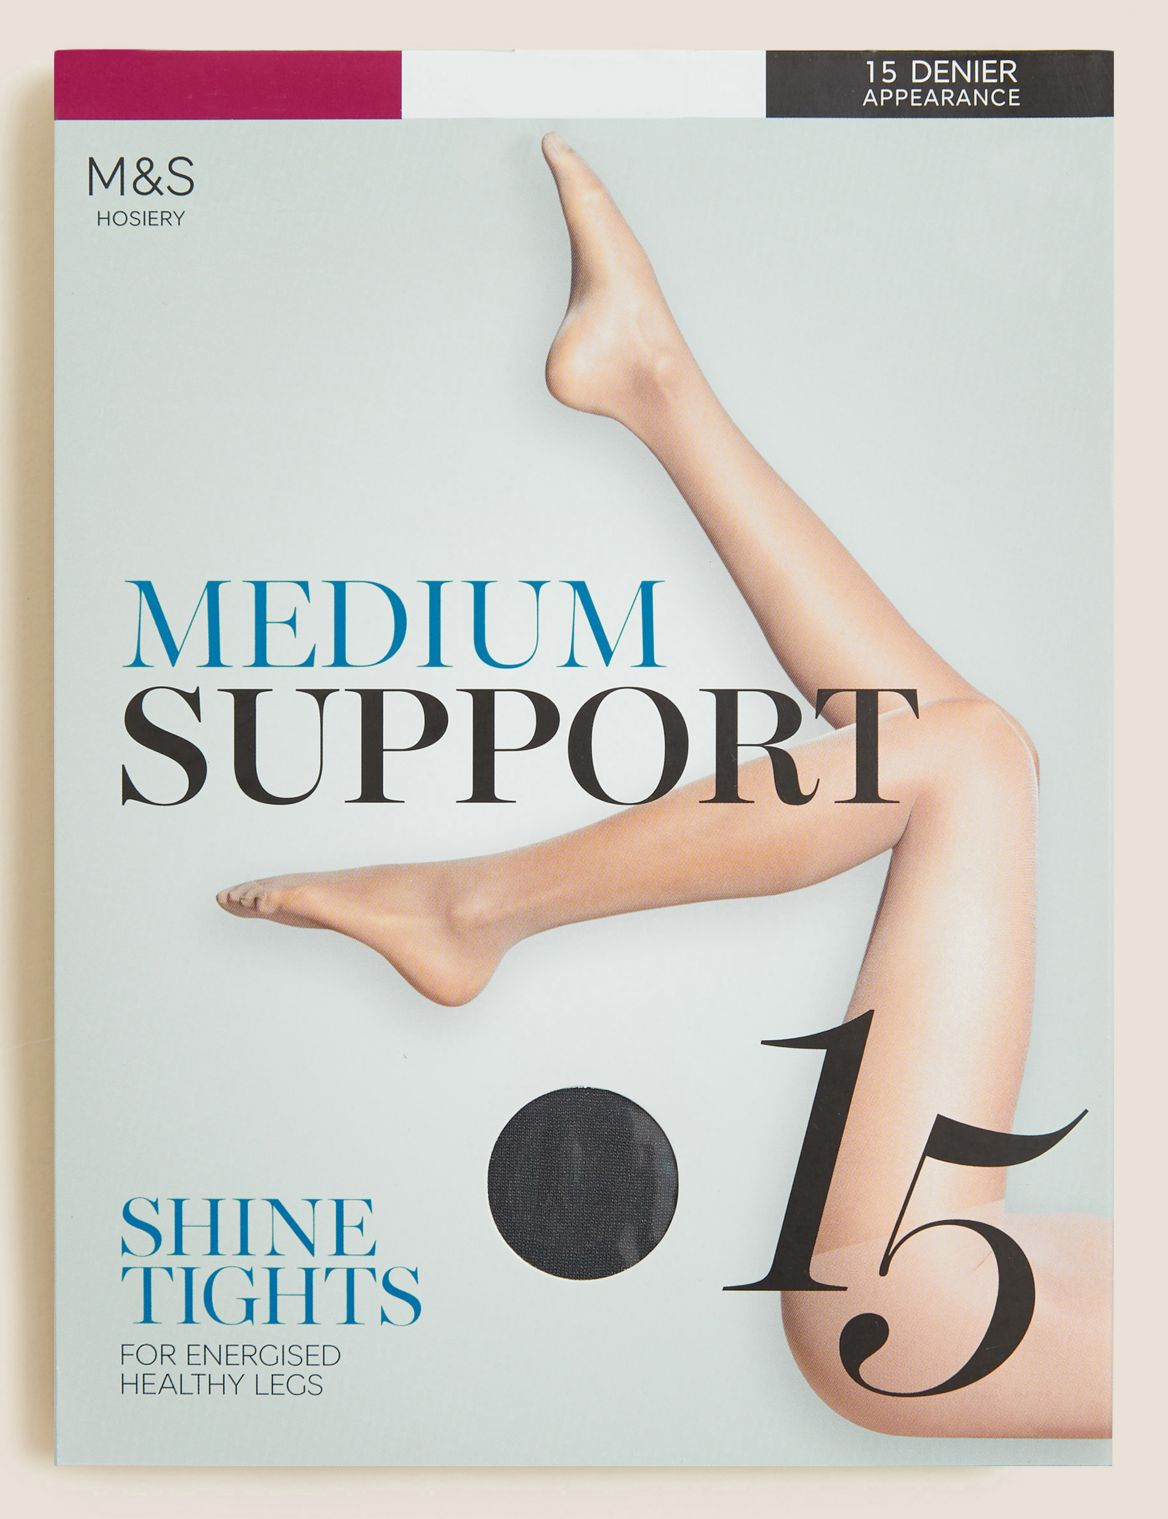 15 Denier Medium Support Sheer Tights nearly black